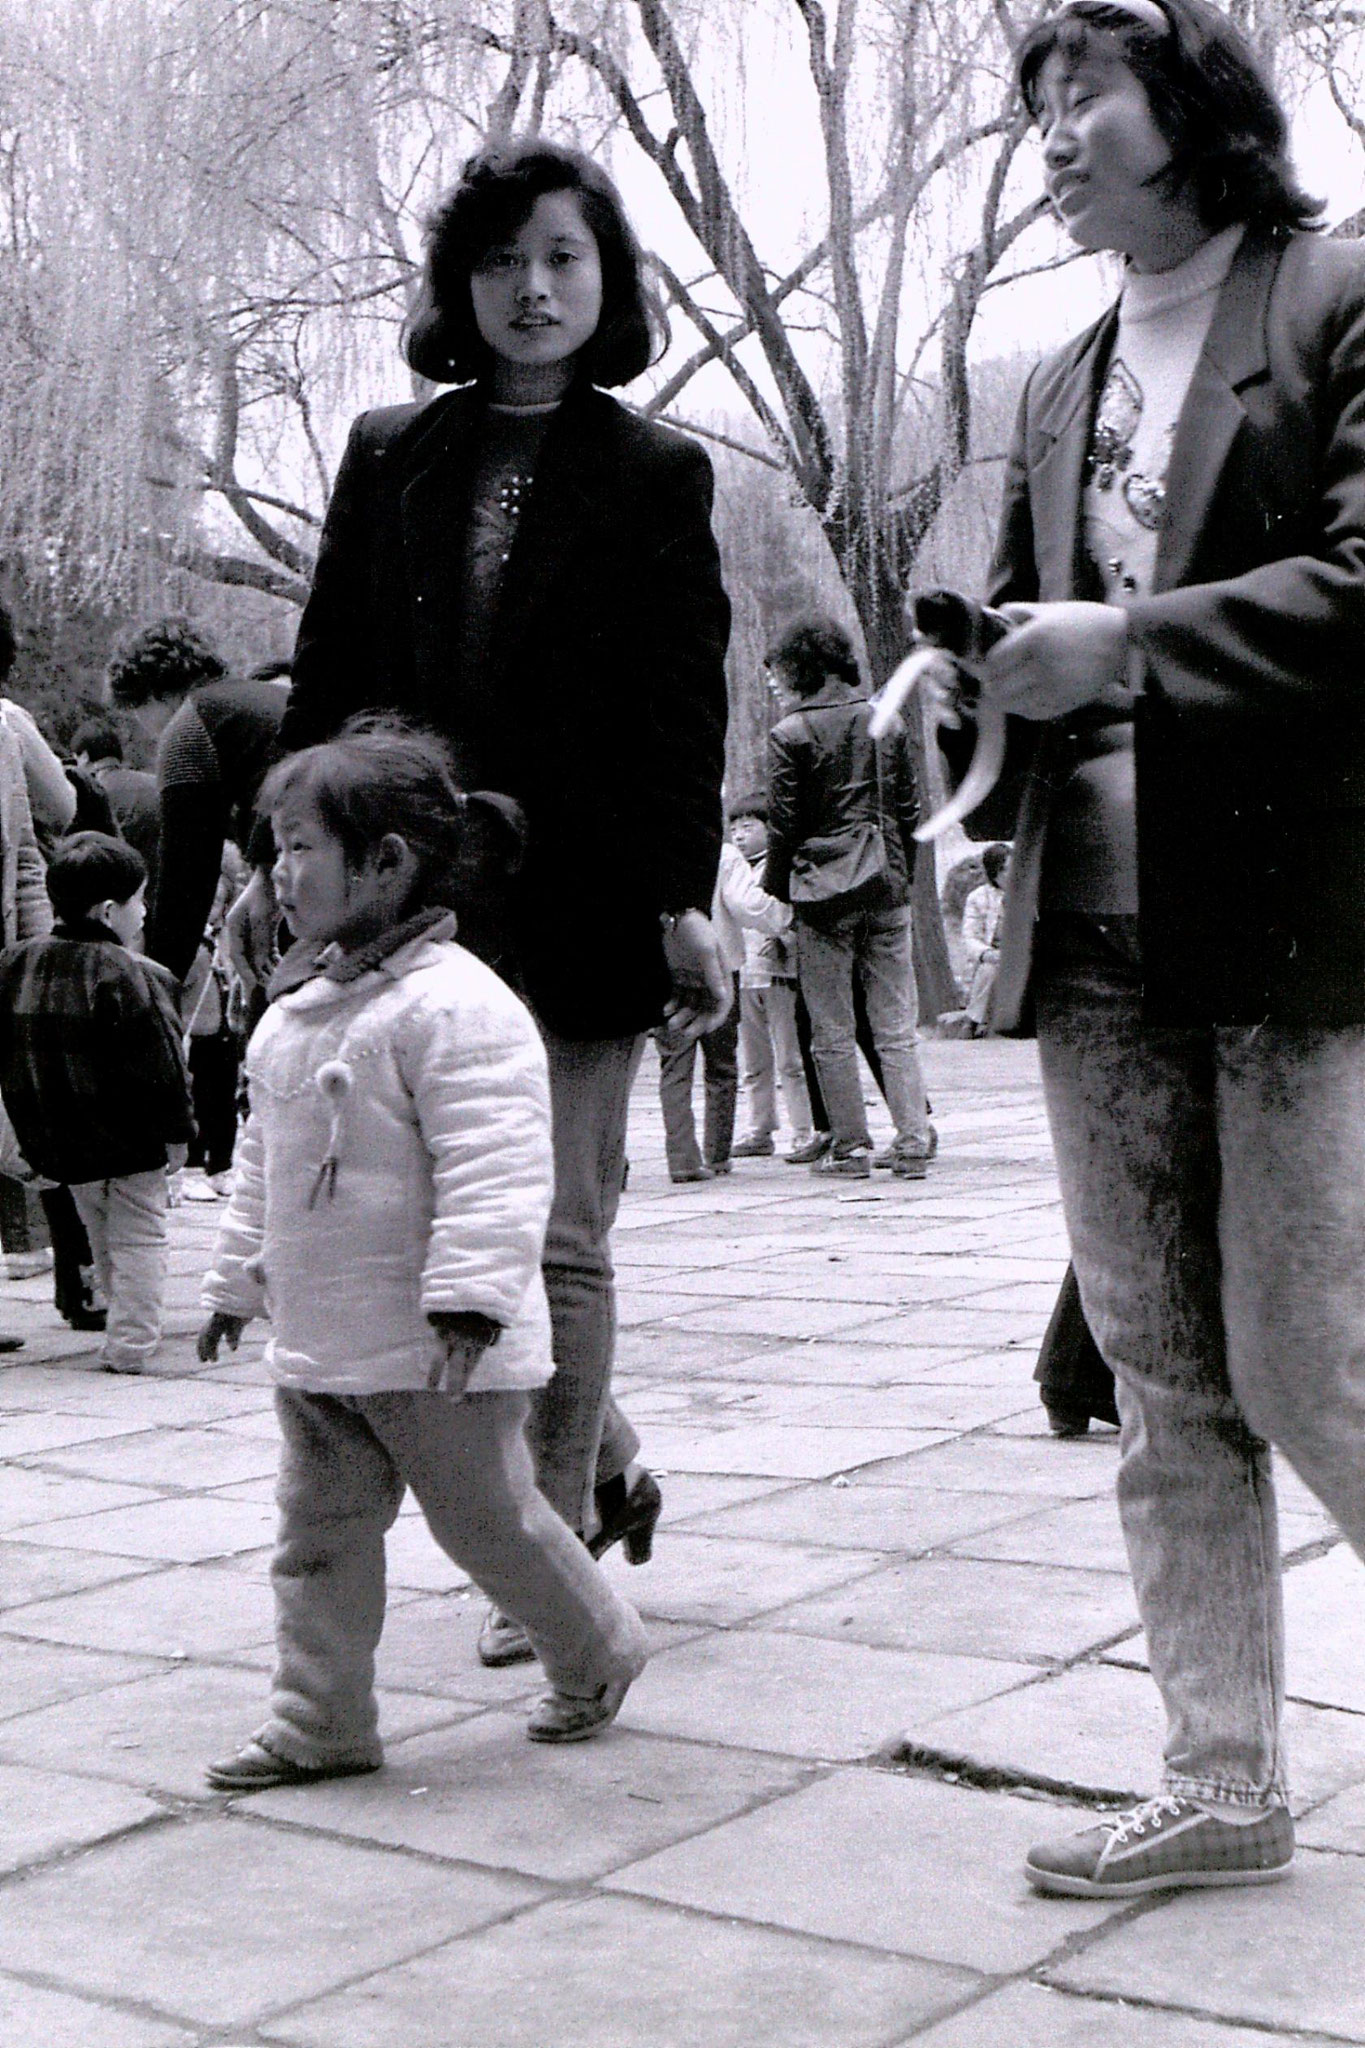 20/3/1989: 11: Wuxi children in park